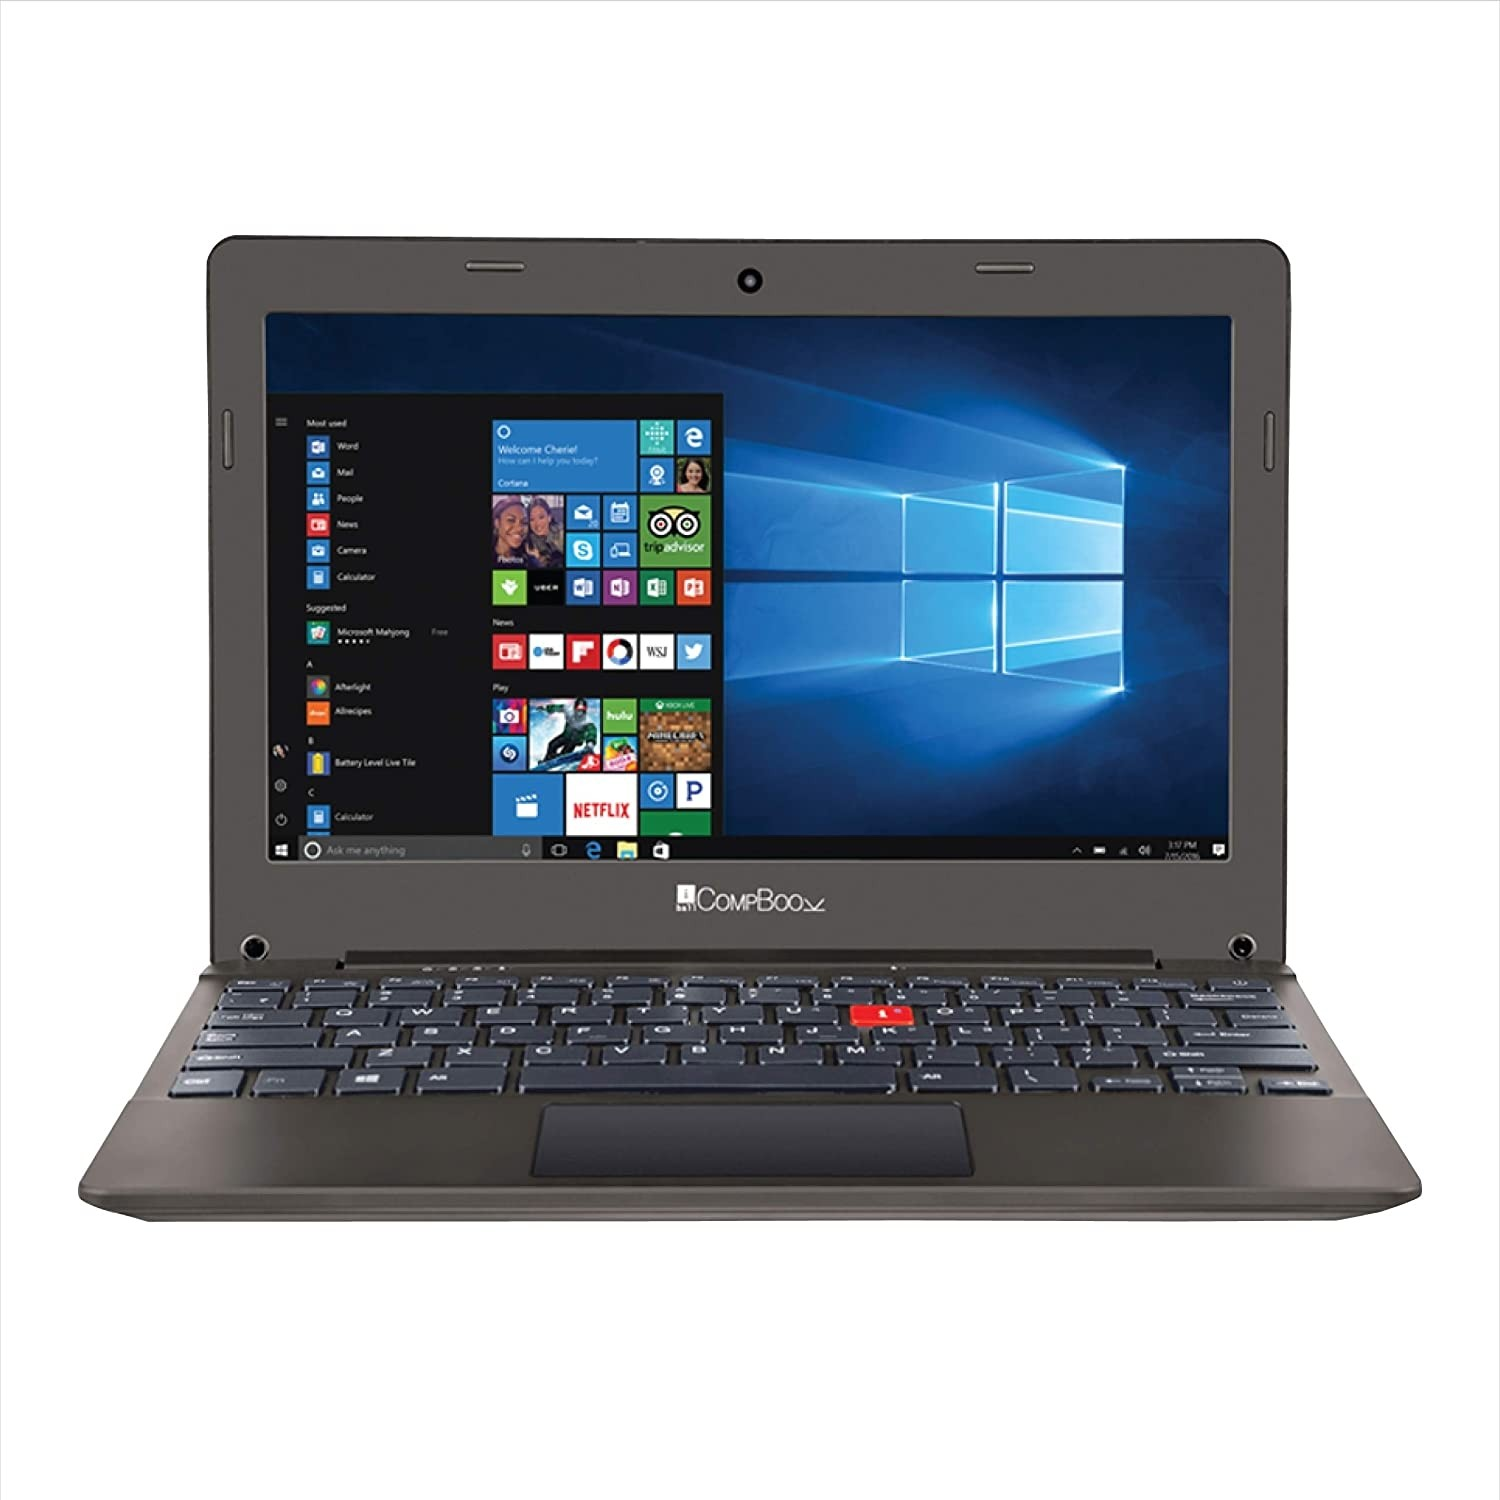 Refurbished laptops & desktops - IBall Excelance OHD IPS Screen With 11.6-Inch FHD Display Laptop (8TH Gen Intel Atom X5-Z8350/2GB DDR3/32GB/Windows 10/Integrated Graphics) Chocolate Brown